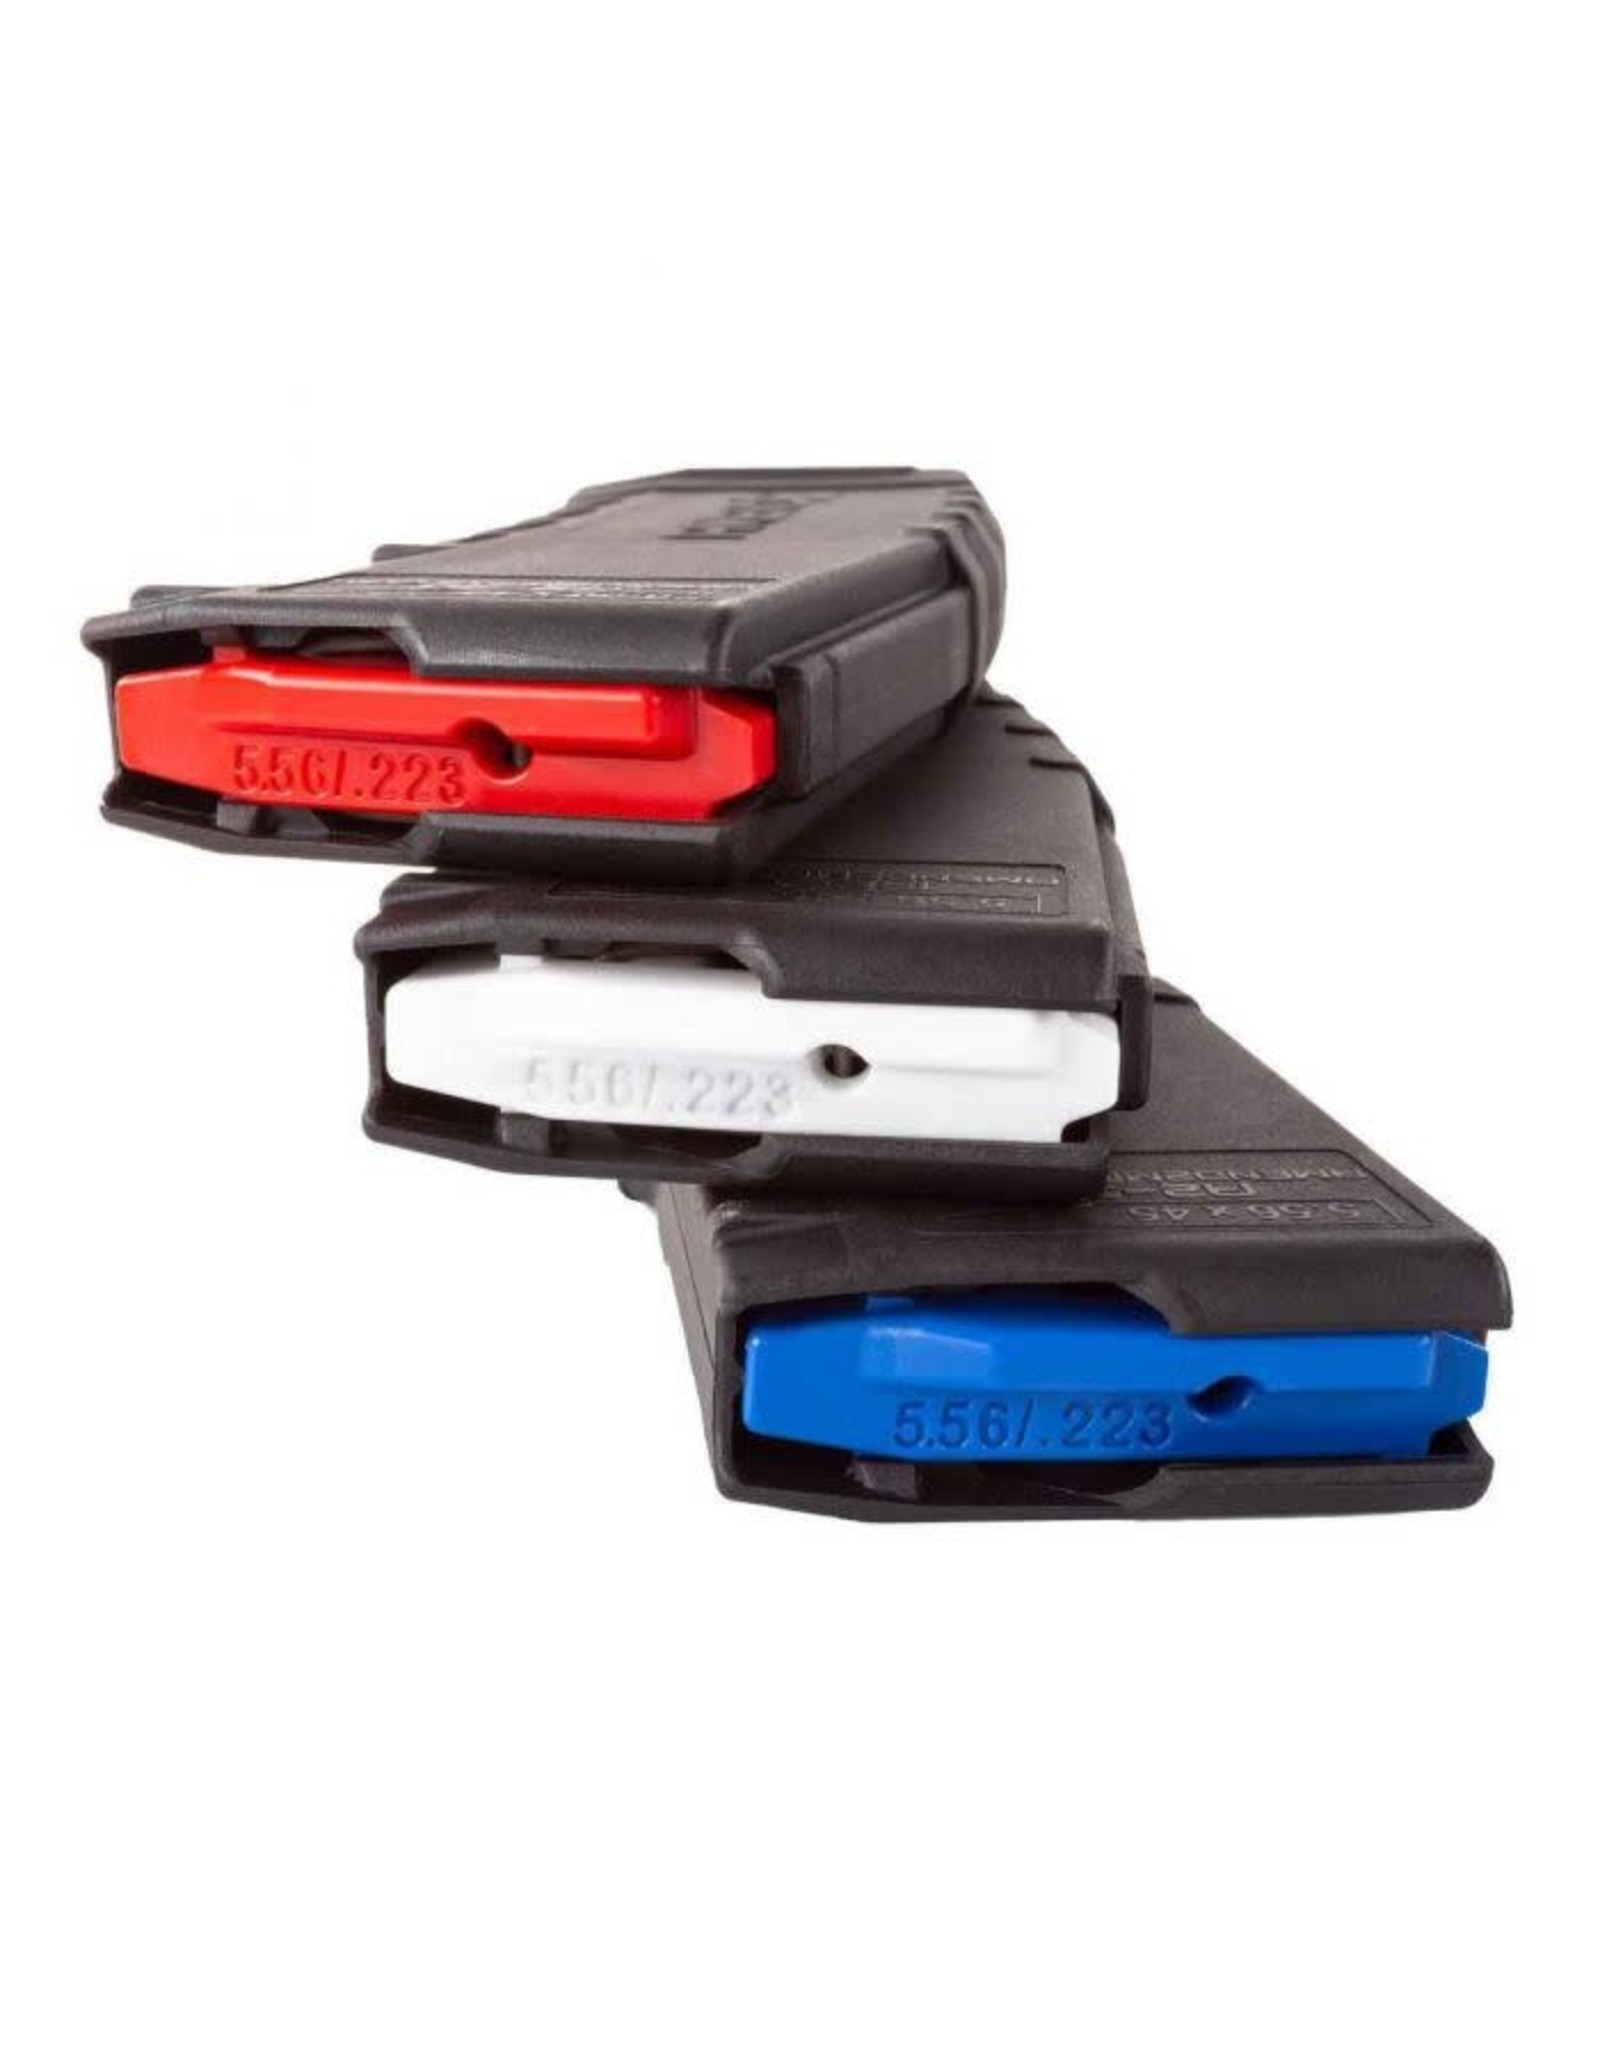 Amend2 AR-15 30 Round Mags - Red/White/Blue 3 Pack